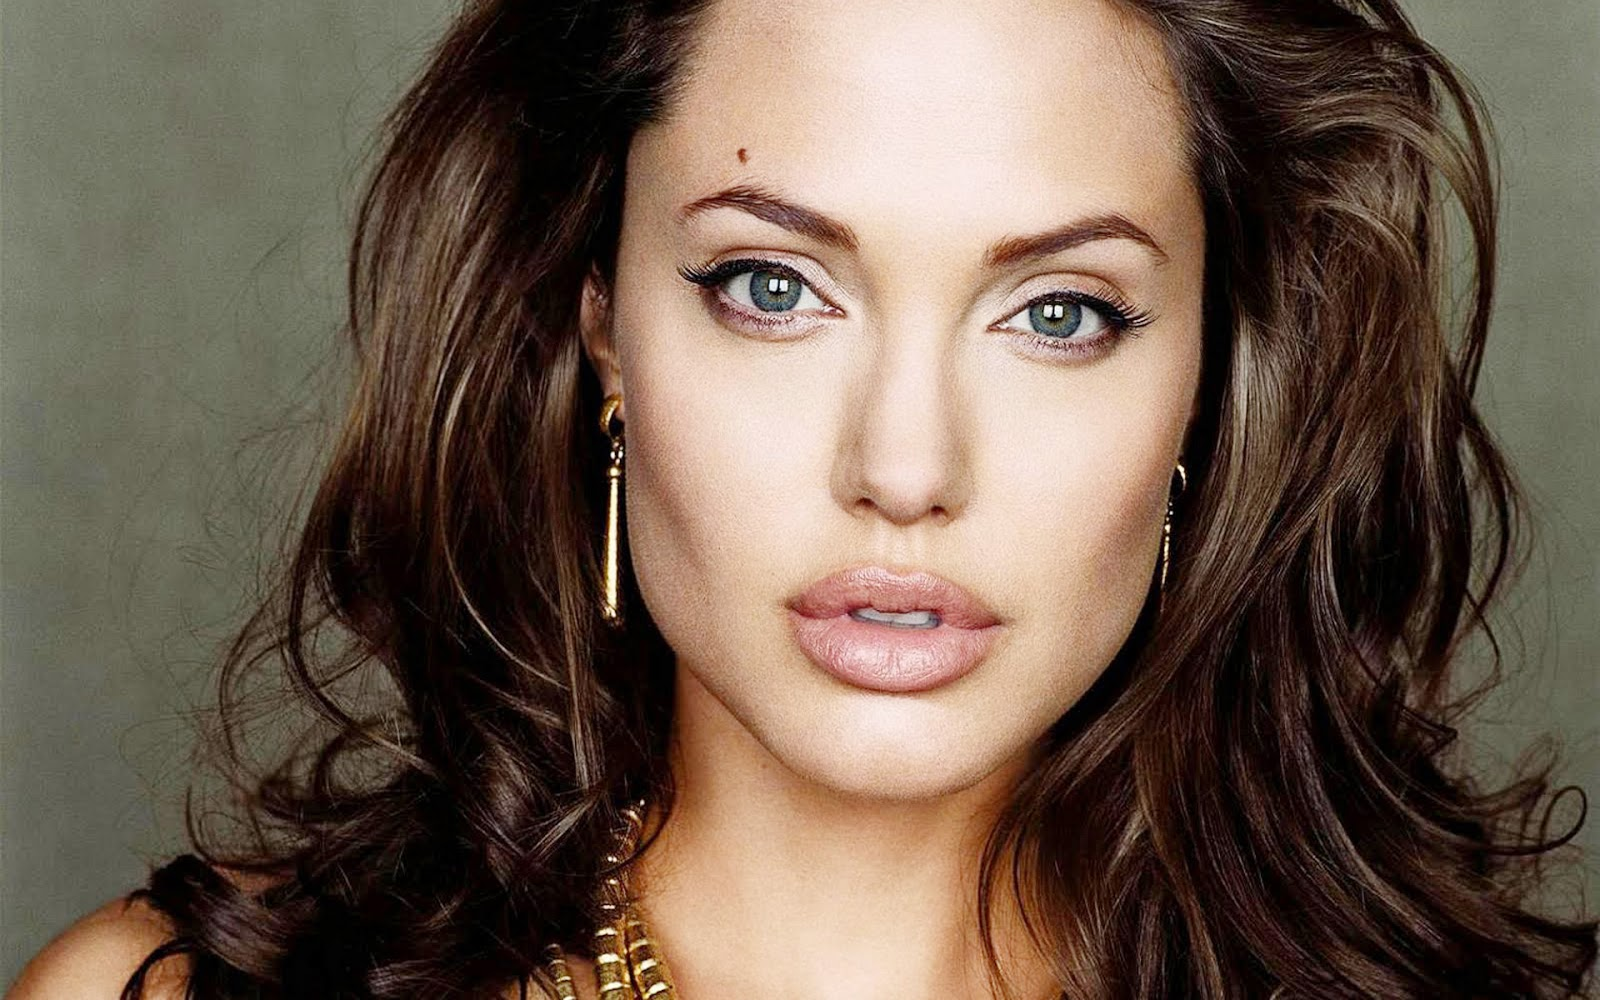 angelina-jolie-2-here-are-5-ladies-who-are-the-splitting-image-of-angelina-jolie